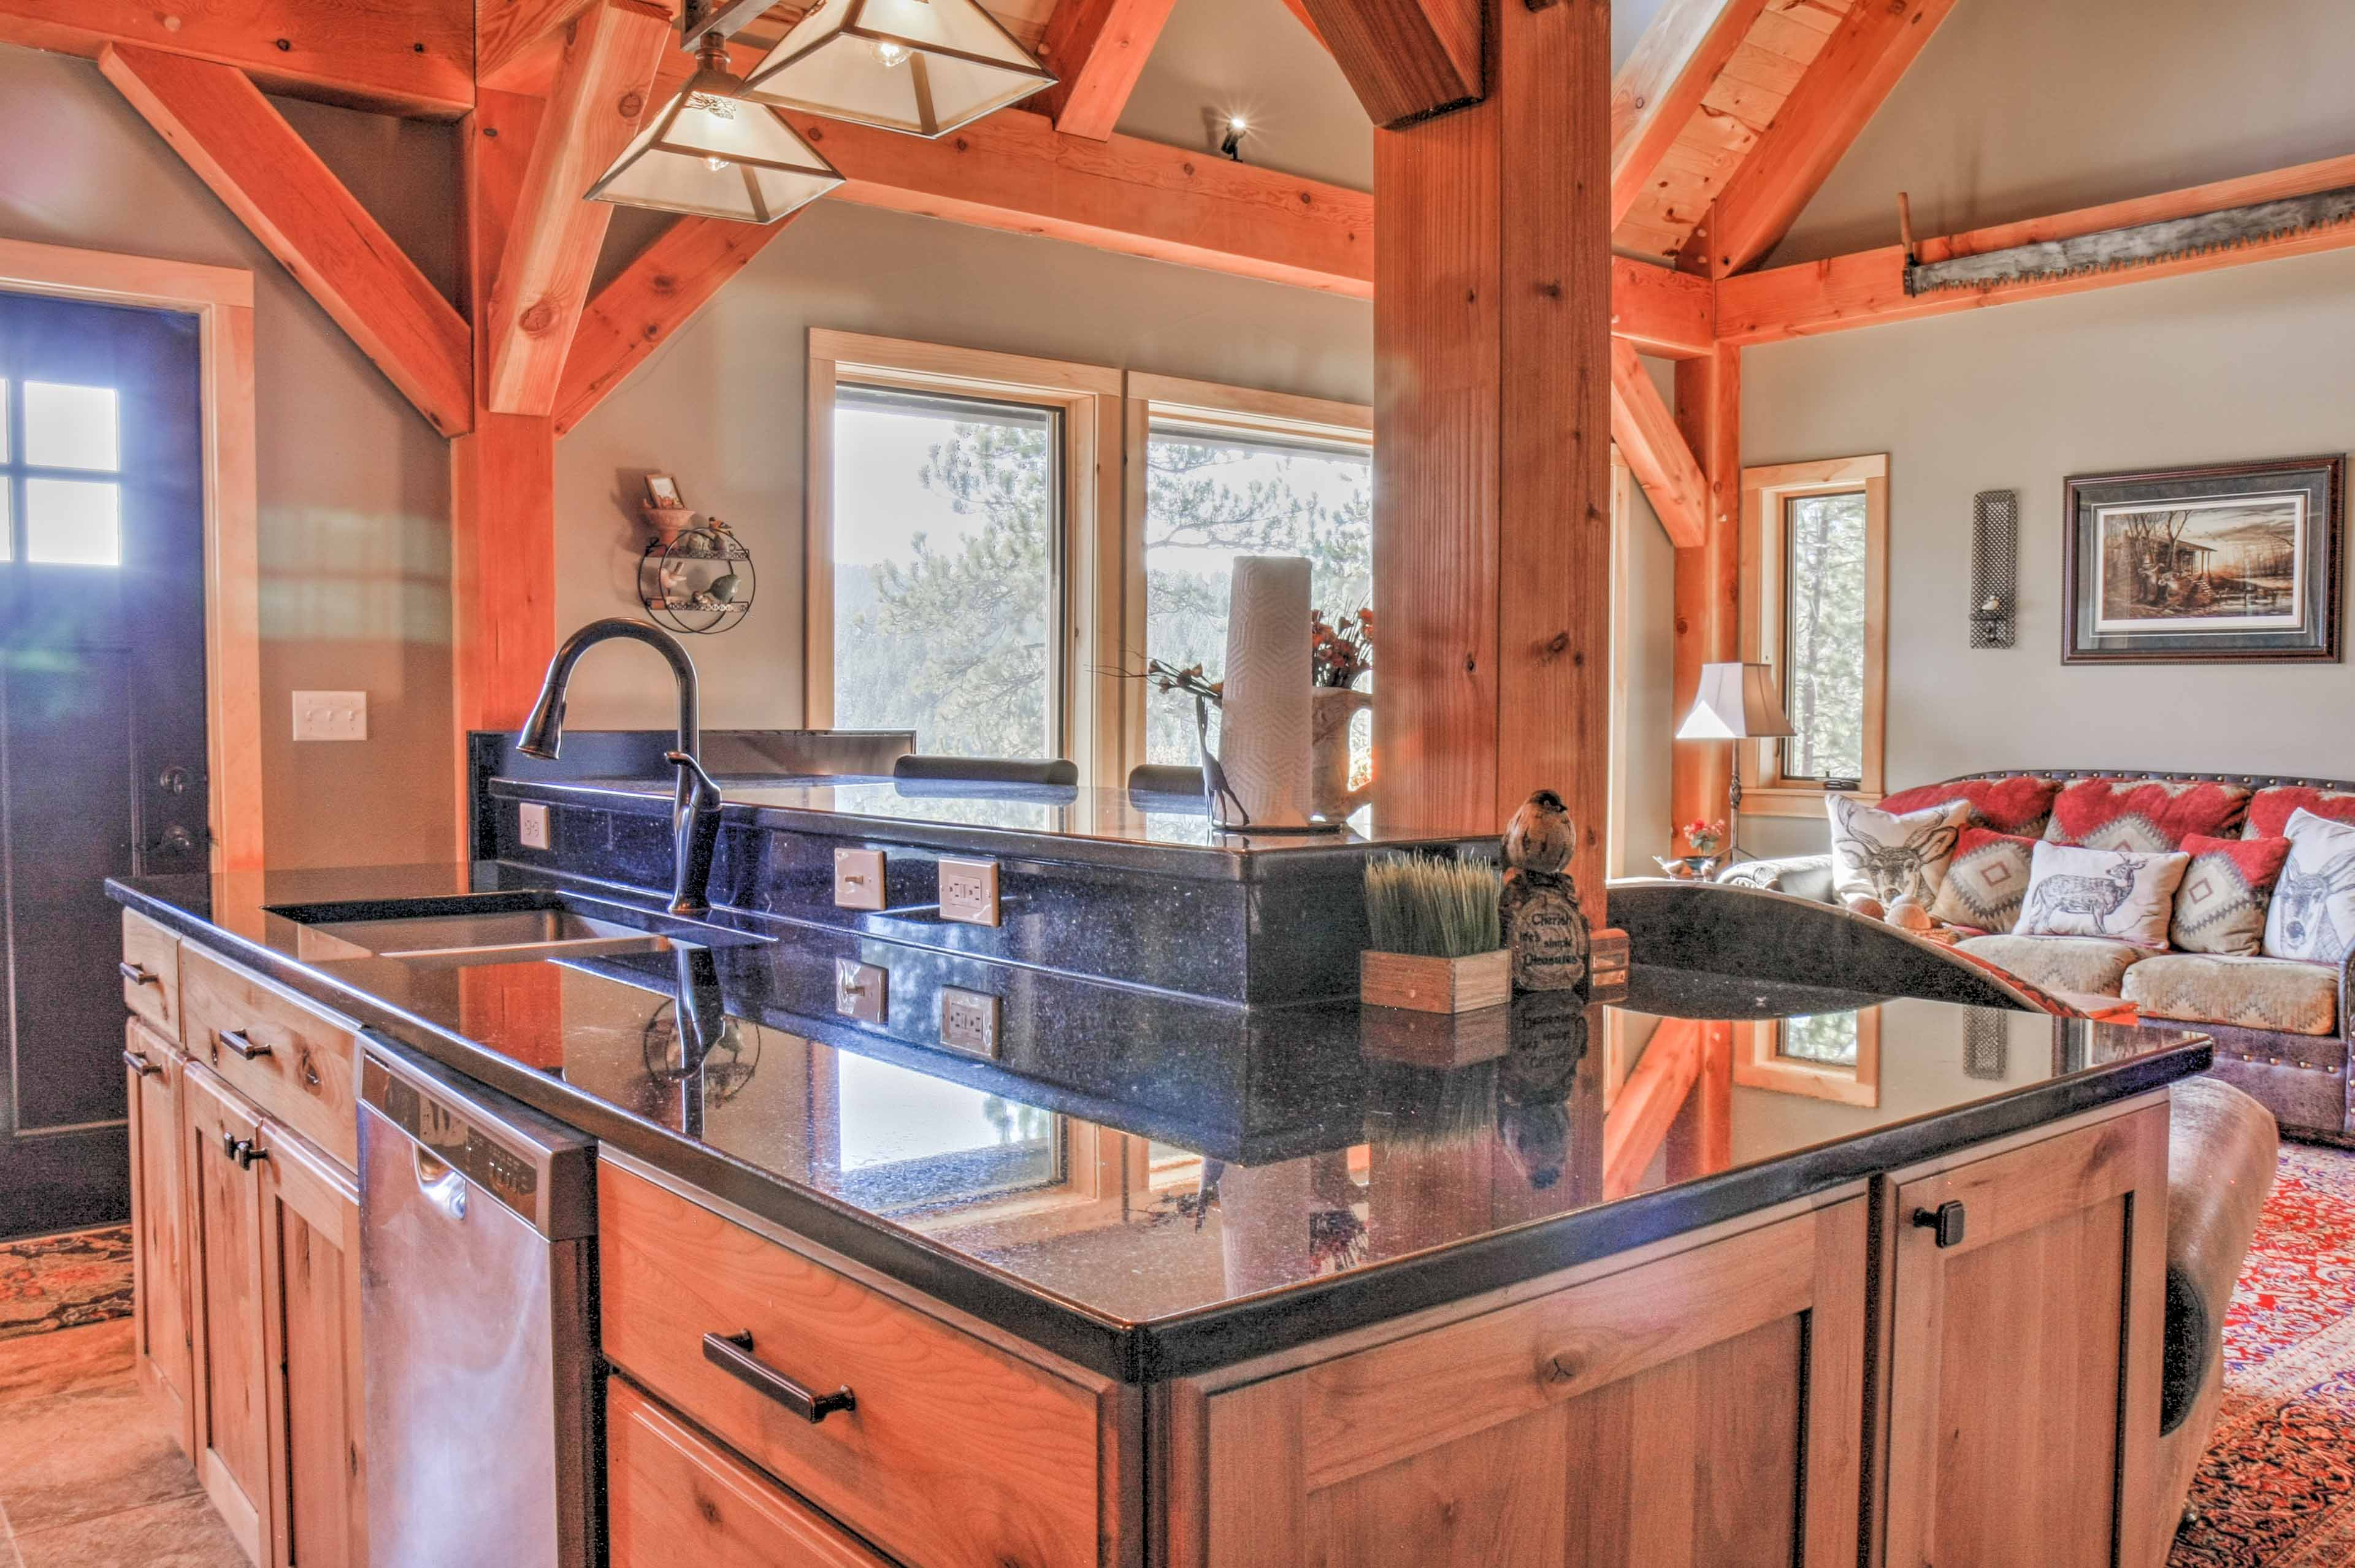 The home features sleek granite counters throughout.